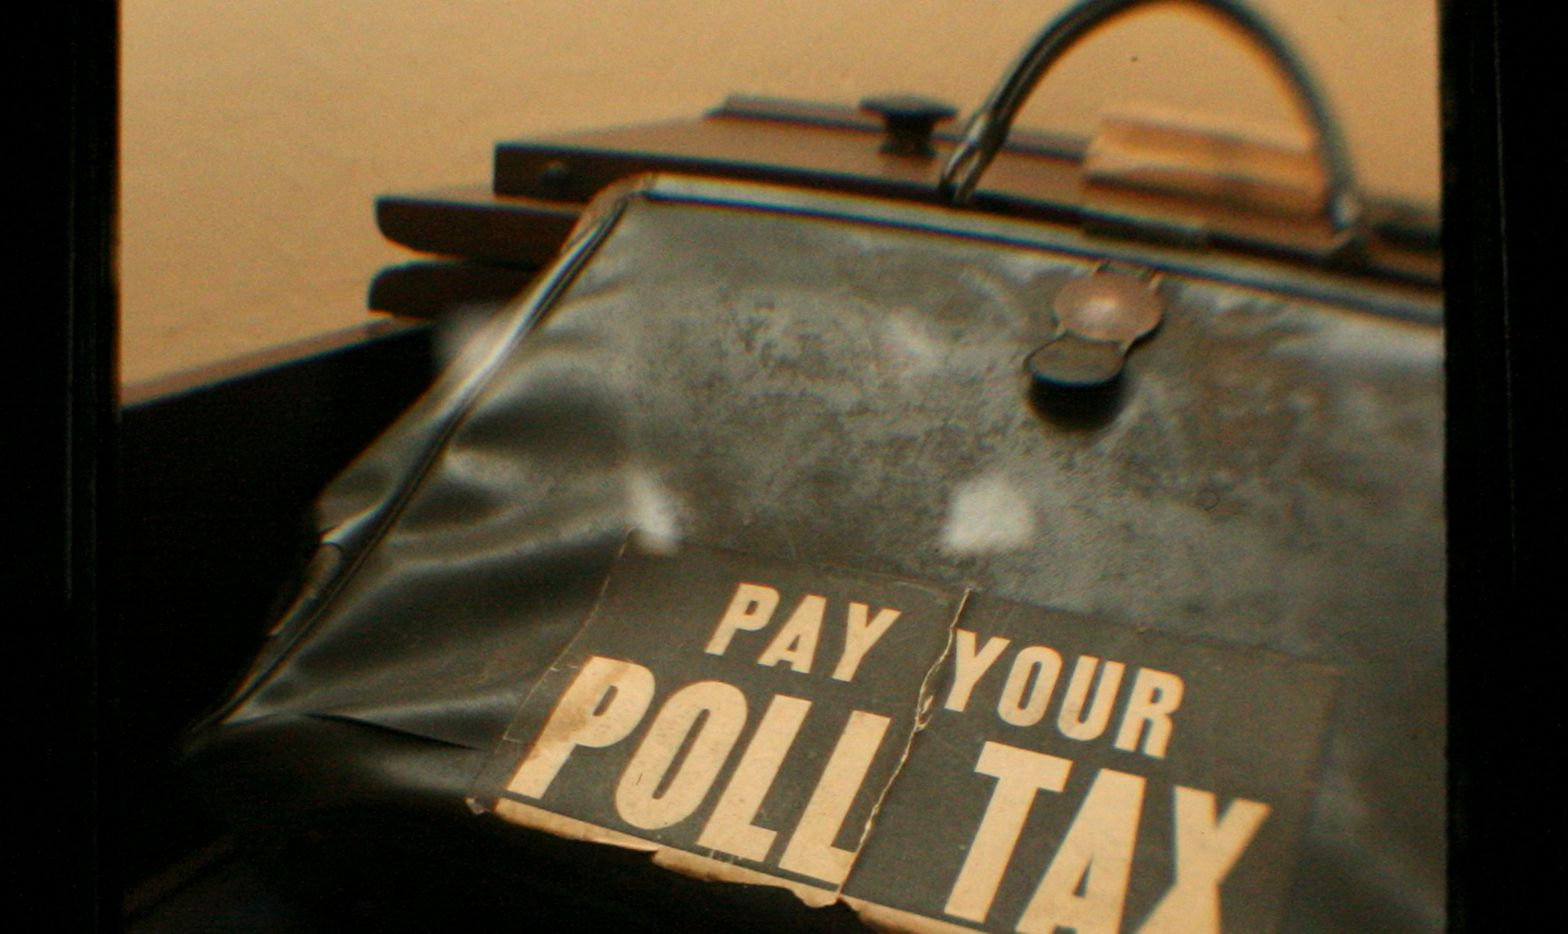 Civil rights activist Juanita Craft's poll tax purse was on display at her former home in Dallas on Feb. 4, 2007.